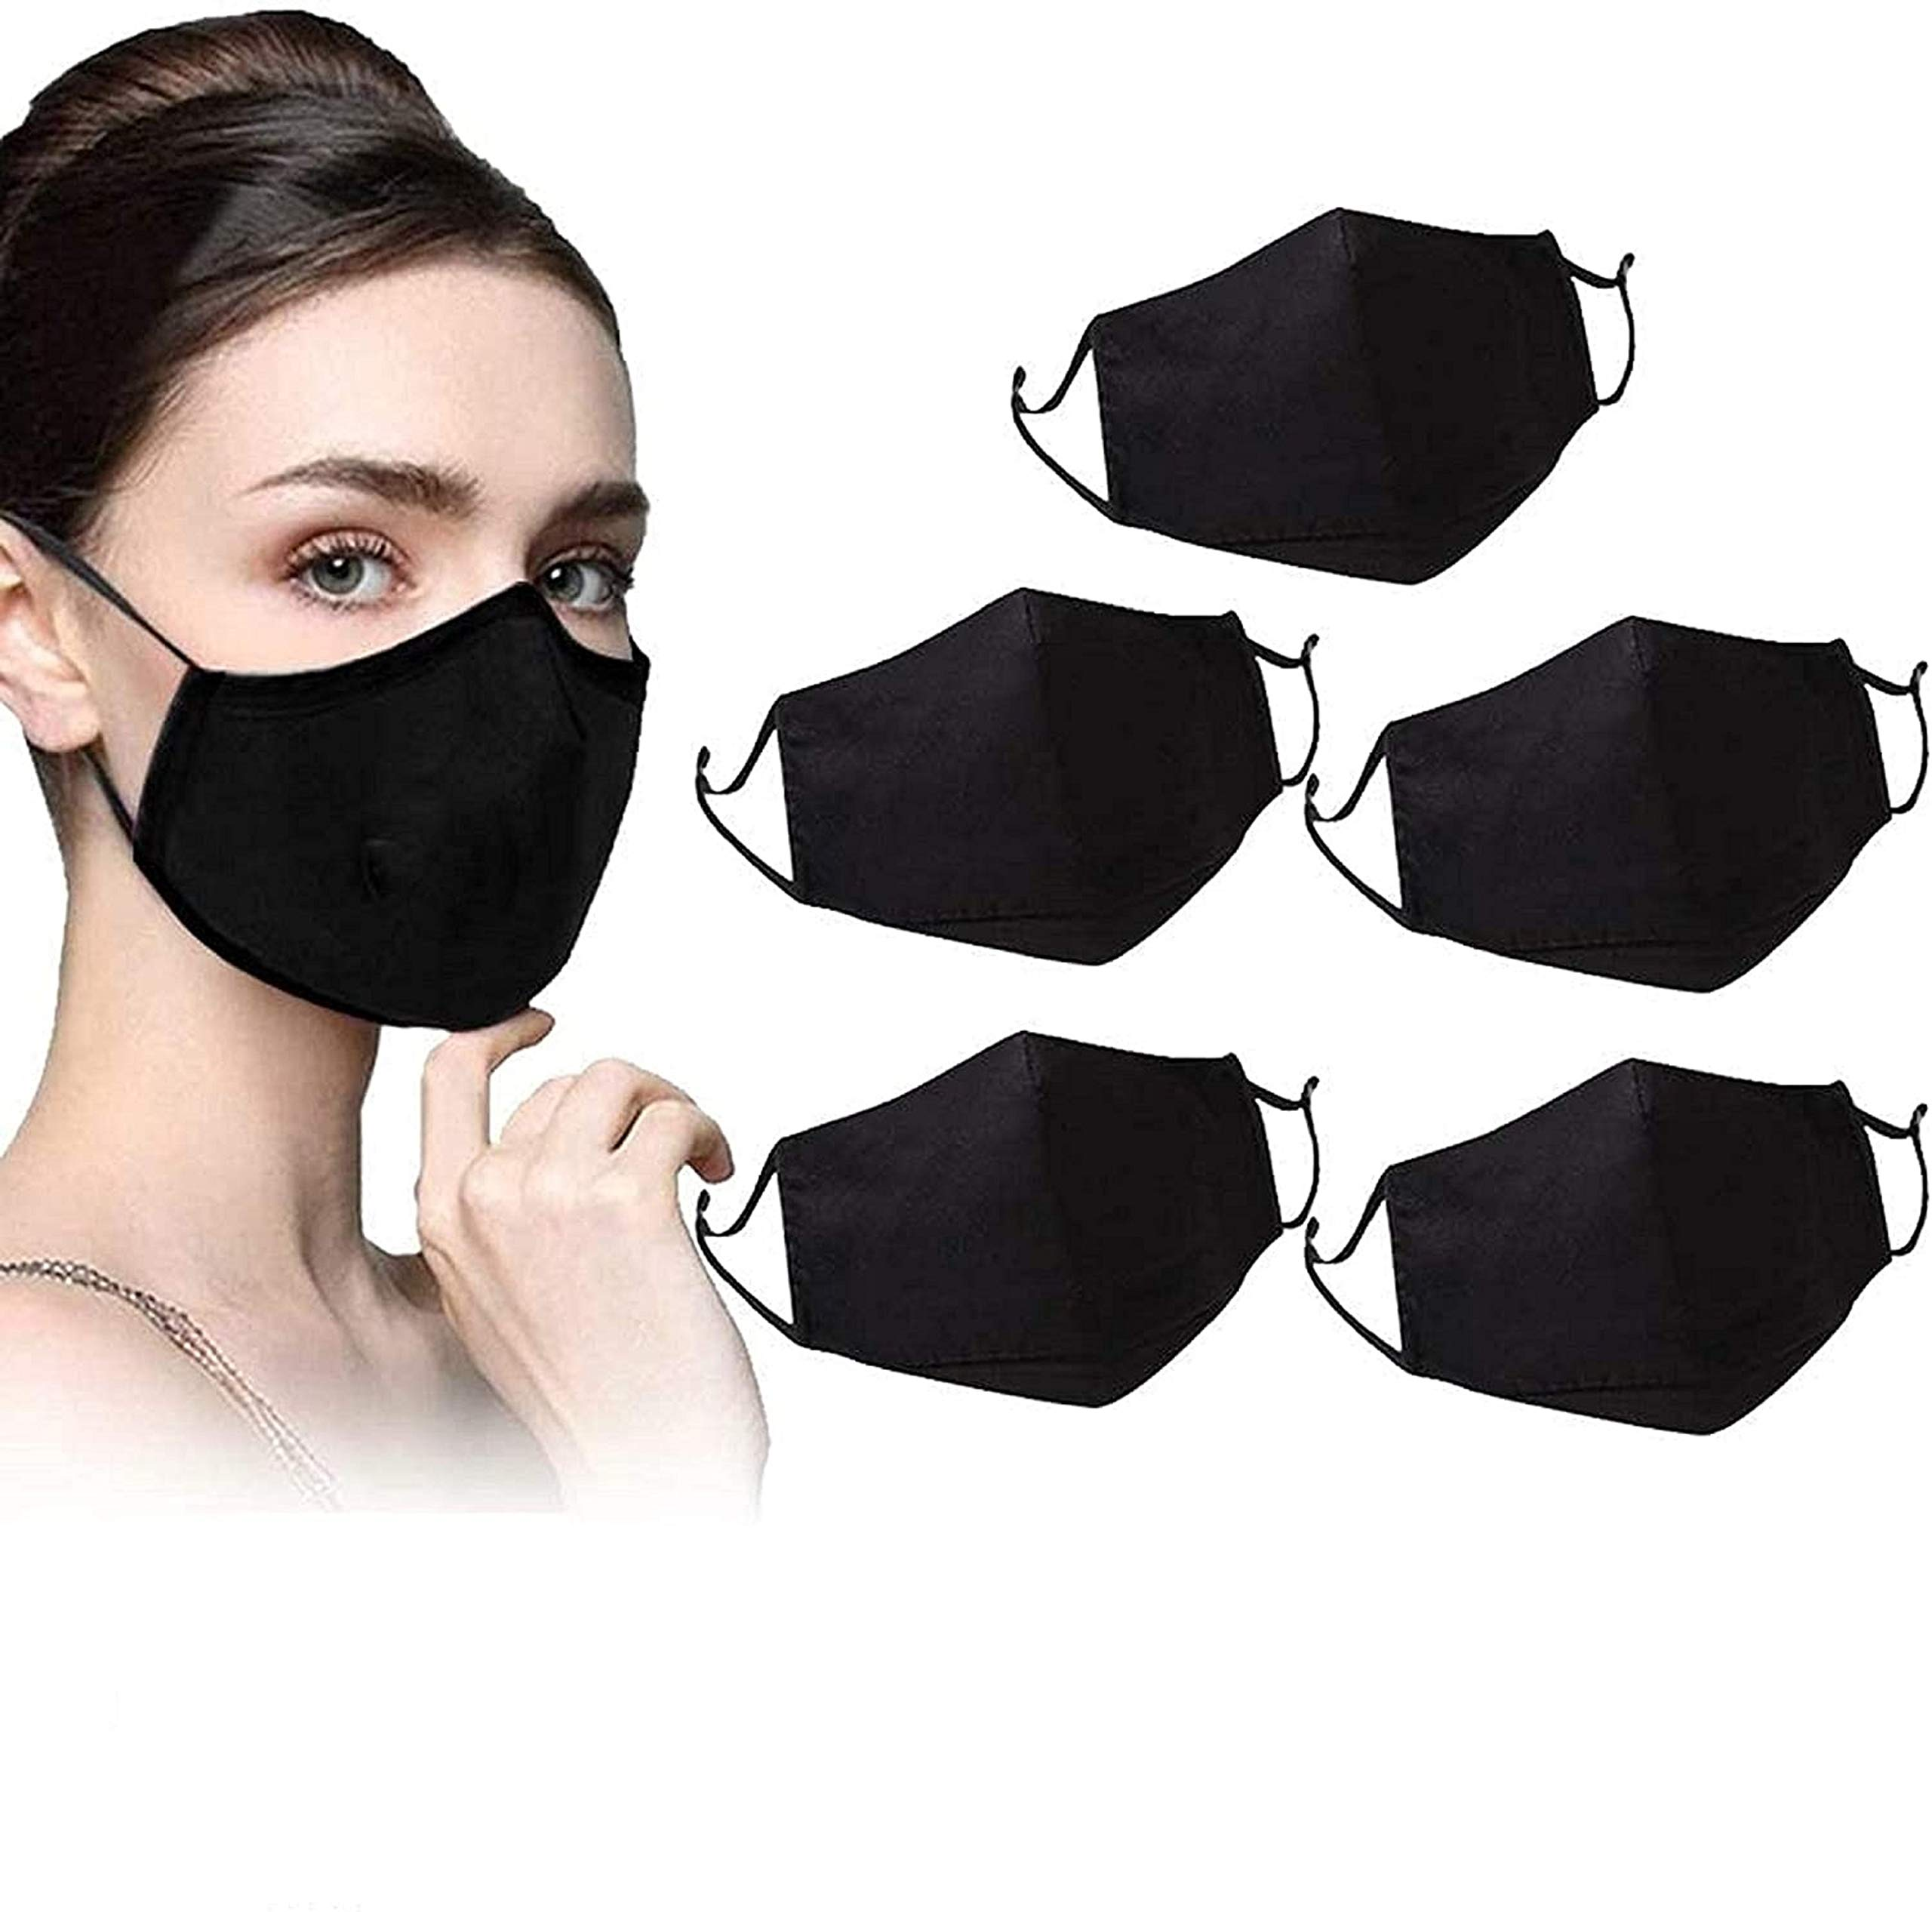 CUQOO 6x Anti Dust Mask Face Mouth Mask, Fashion Reusable Washable Outdoor Unisex Mask, Anti-Pollution Facemask